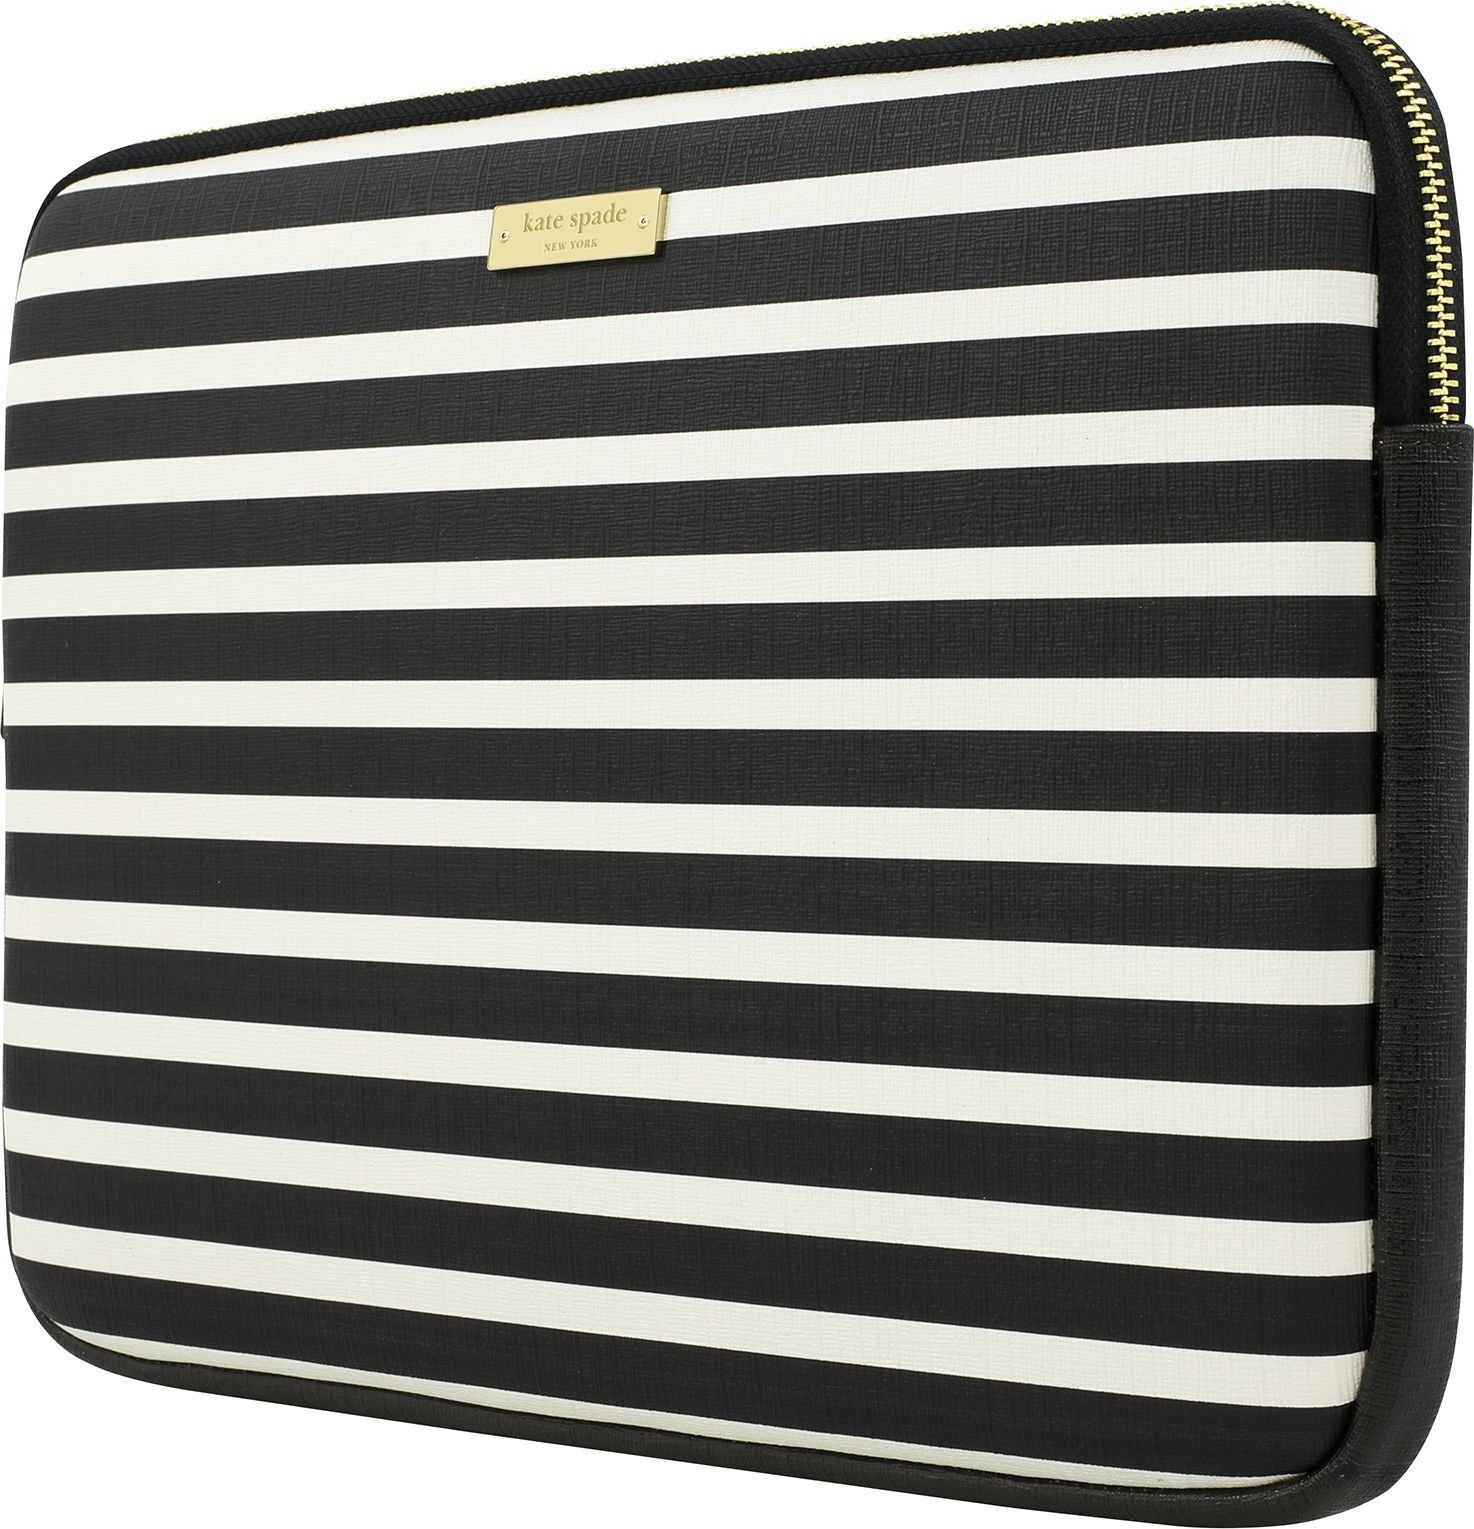 kate spade new york KSMB-012-FSQBC Printed Laptop Sleeve for 13'' MacBook -Fairmont Square Black/Cream by Kate Spade New York